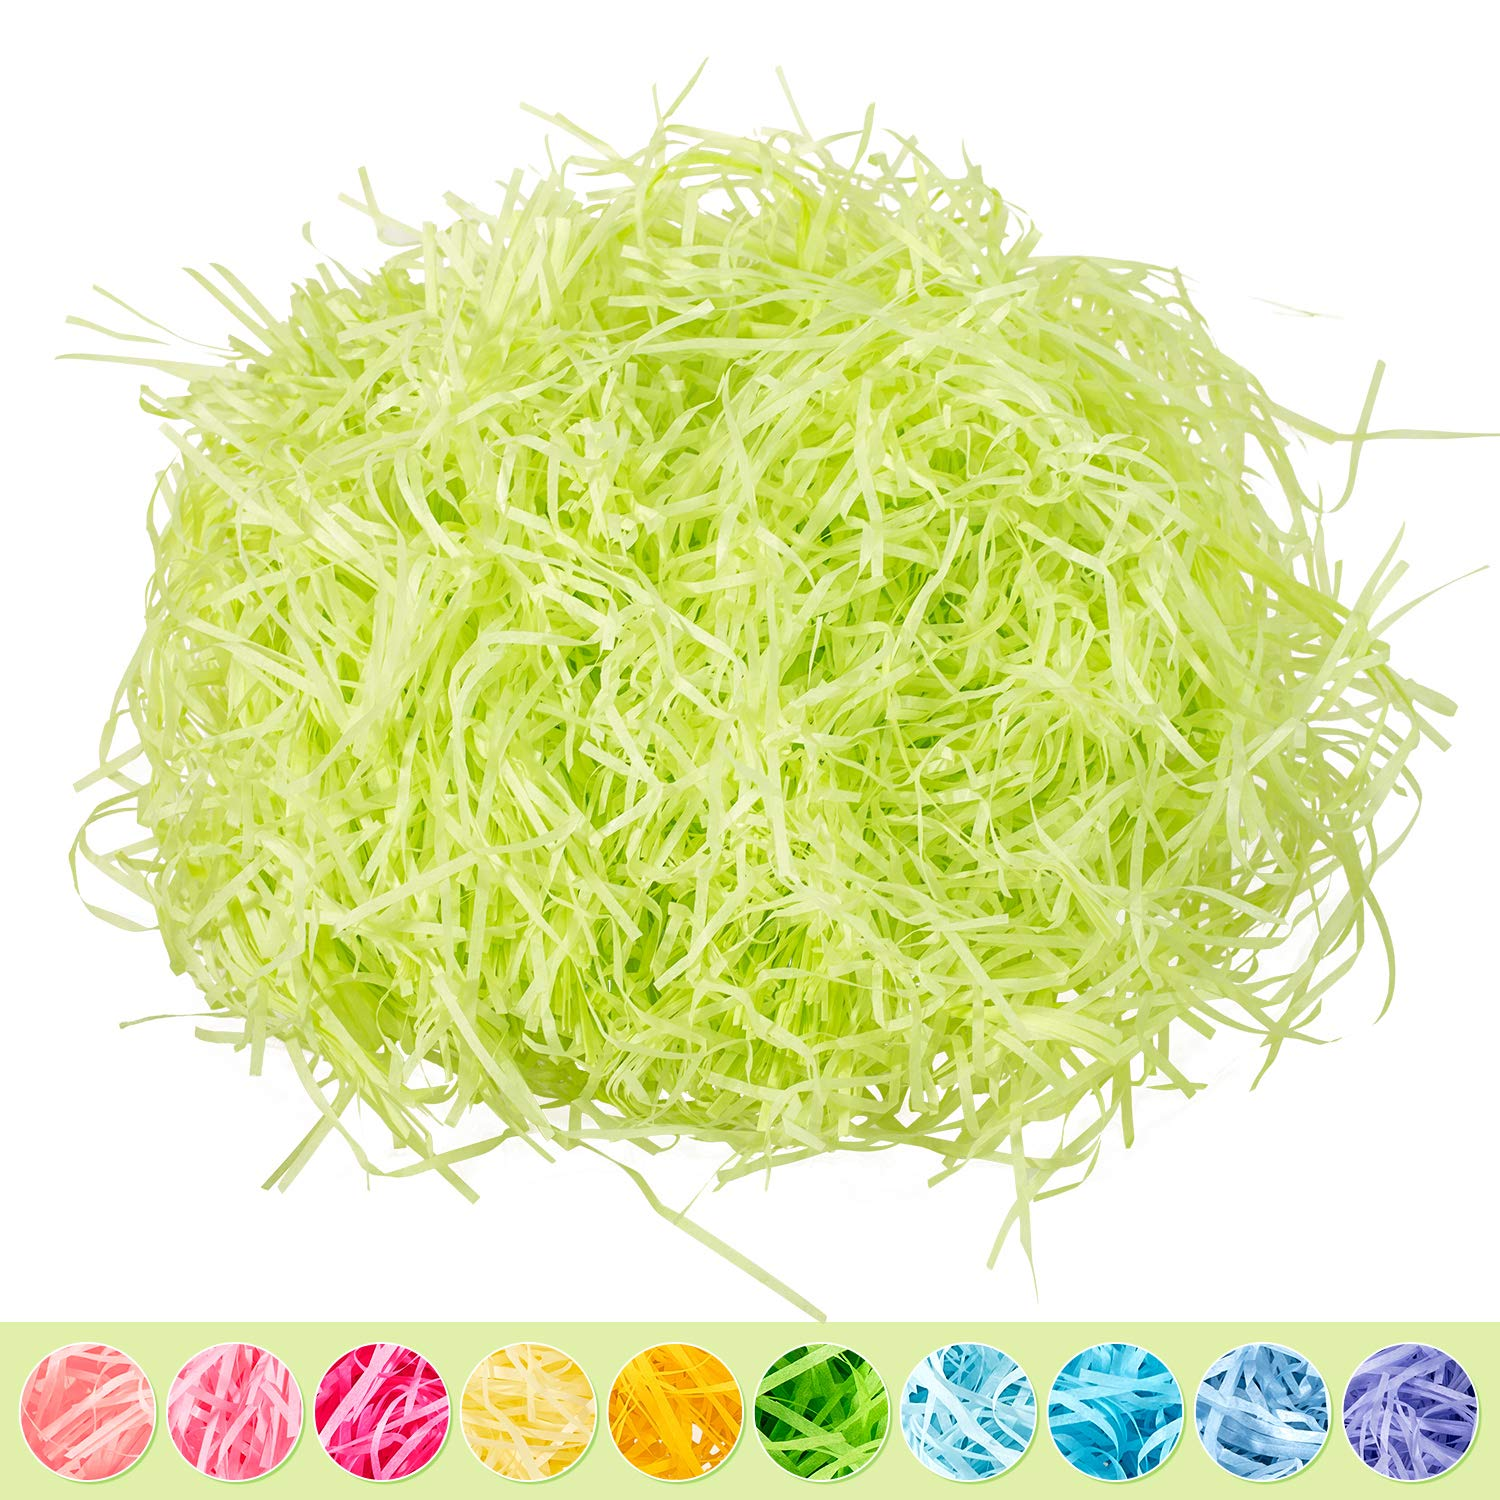 Whaline Easter Basket Grass Craft Shredded Tissue Raffia Gift Filler Paper Shreds for Baskets Egg Stuffers for Spring Party Supplies Accessories Decorations (Light Green)